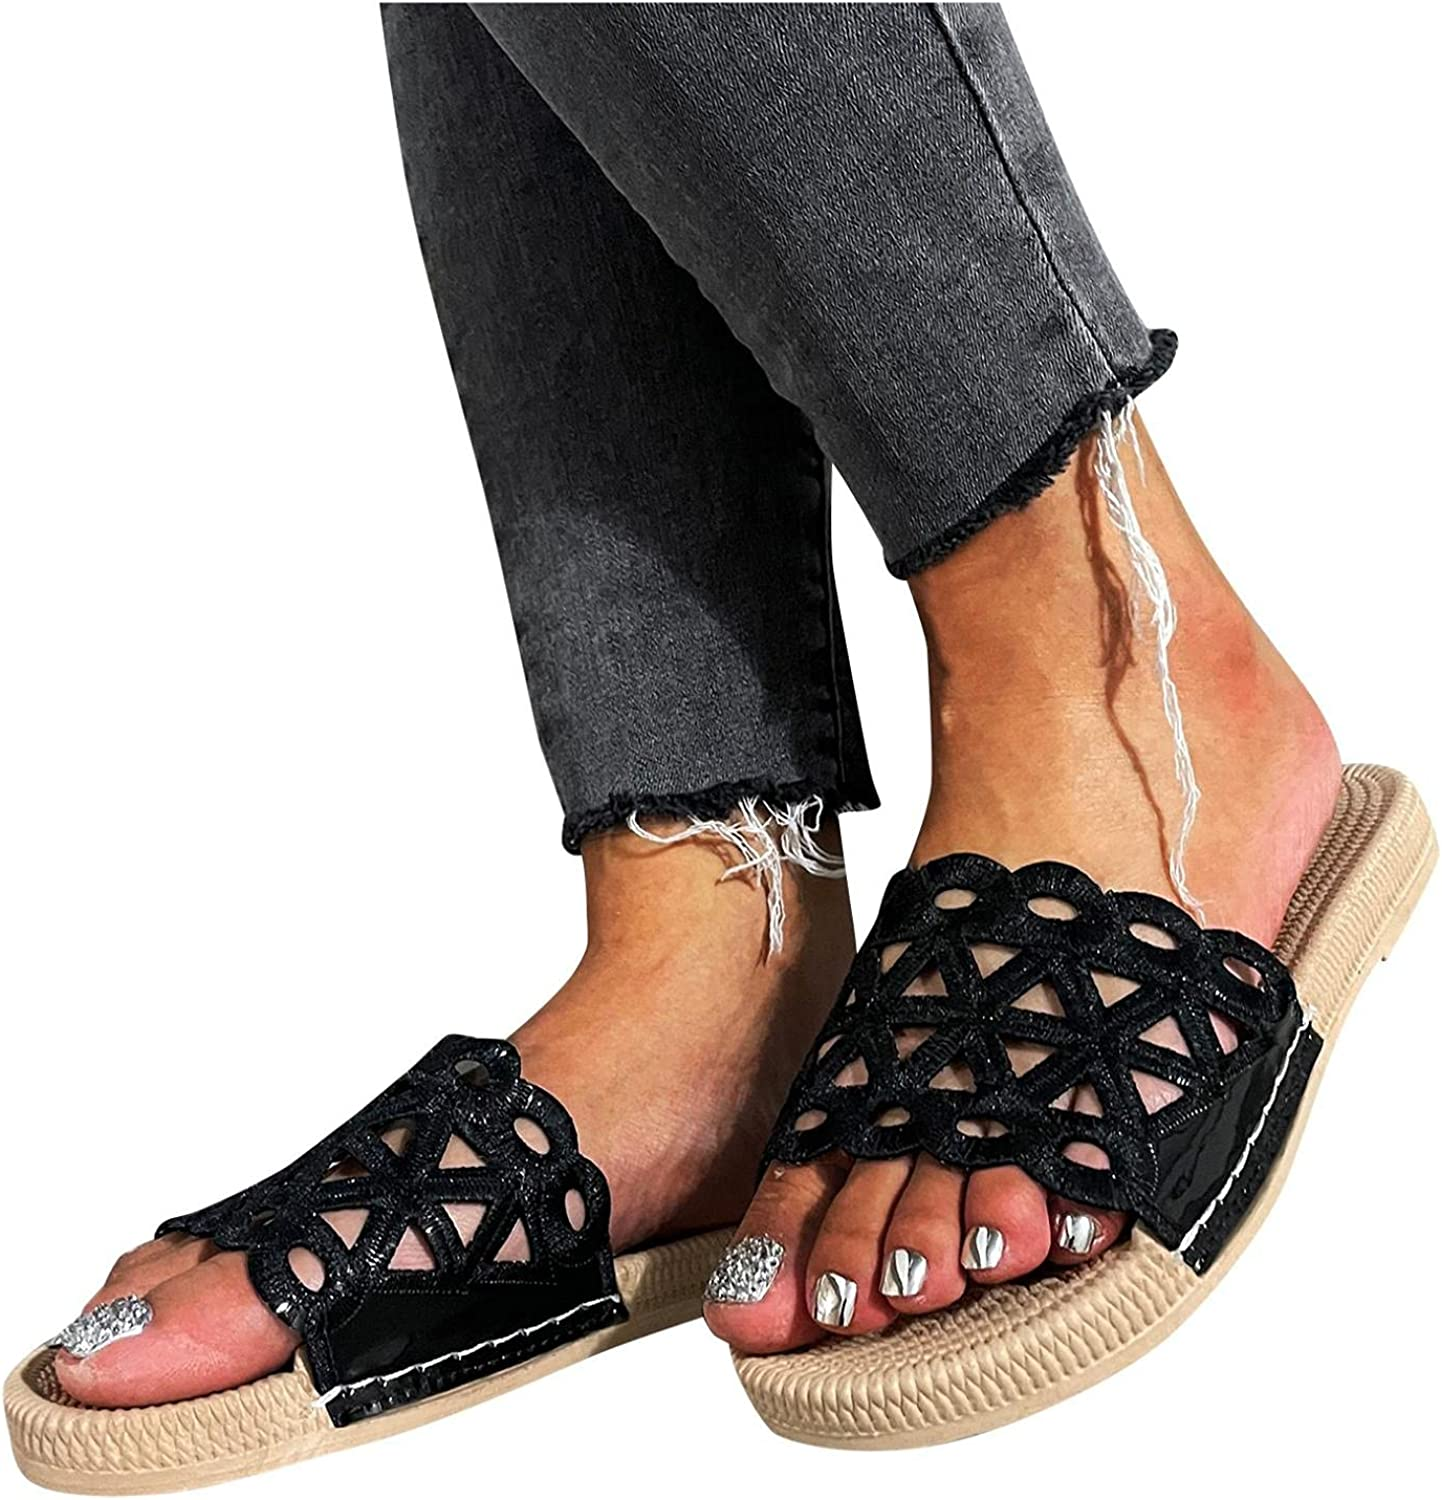 Hunauoo Minneapolis Mall Slippers Manufacturer regenerated product for Women Home Thick-Soled Flat Beach